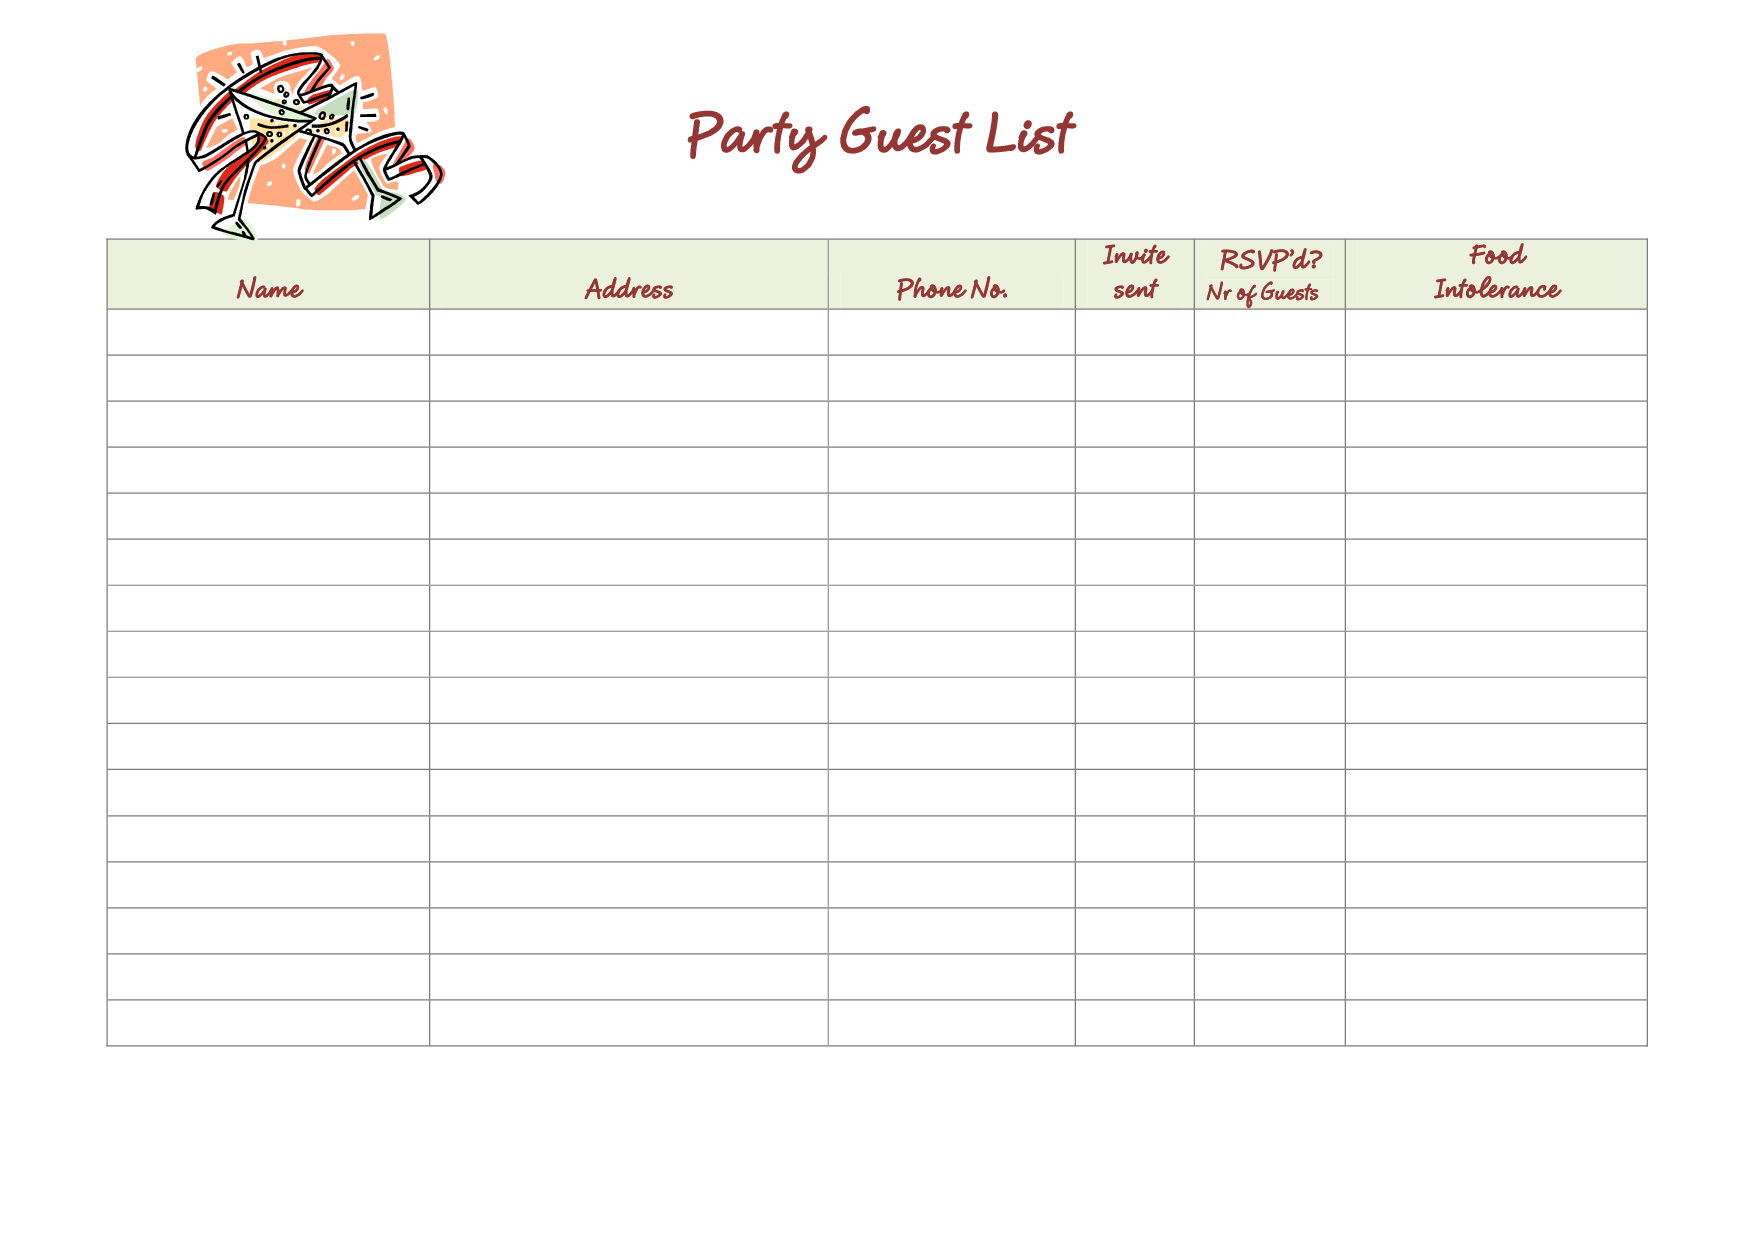 graphic regarding Birthday List Printable titled Get together Visitor Listing Template. Revolutionary Excel Make contact with Record